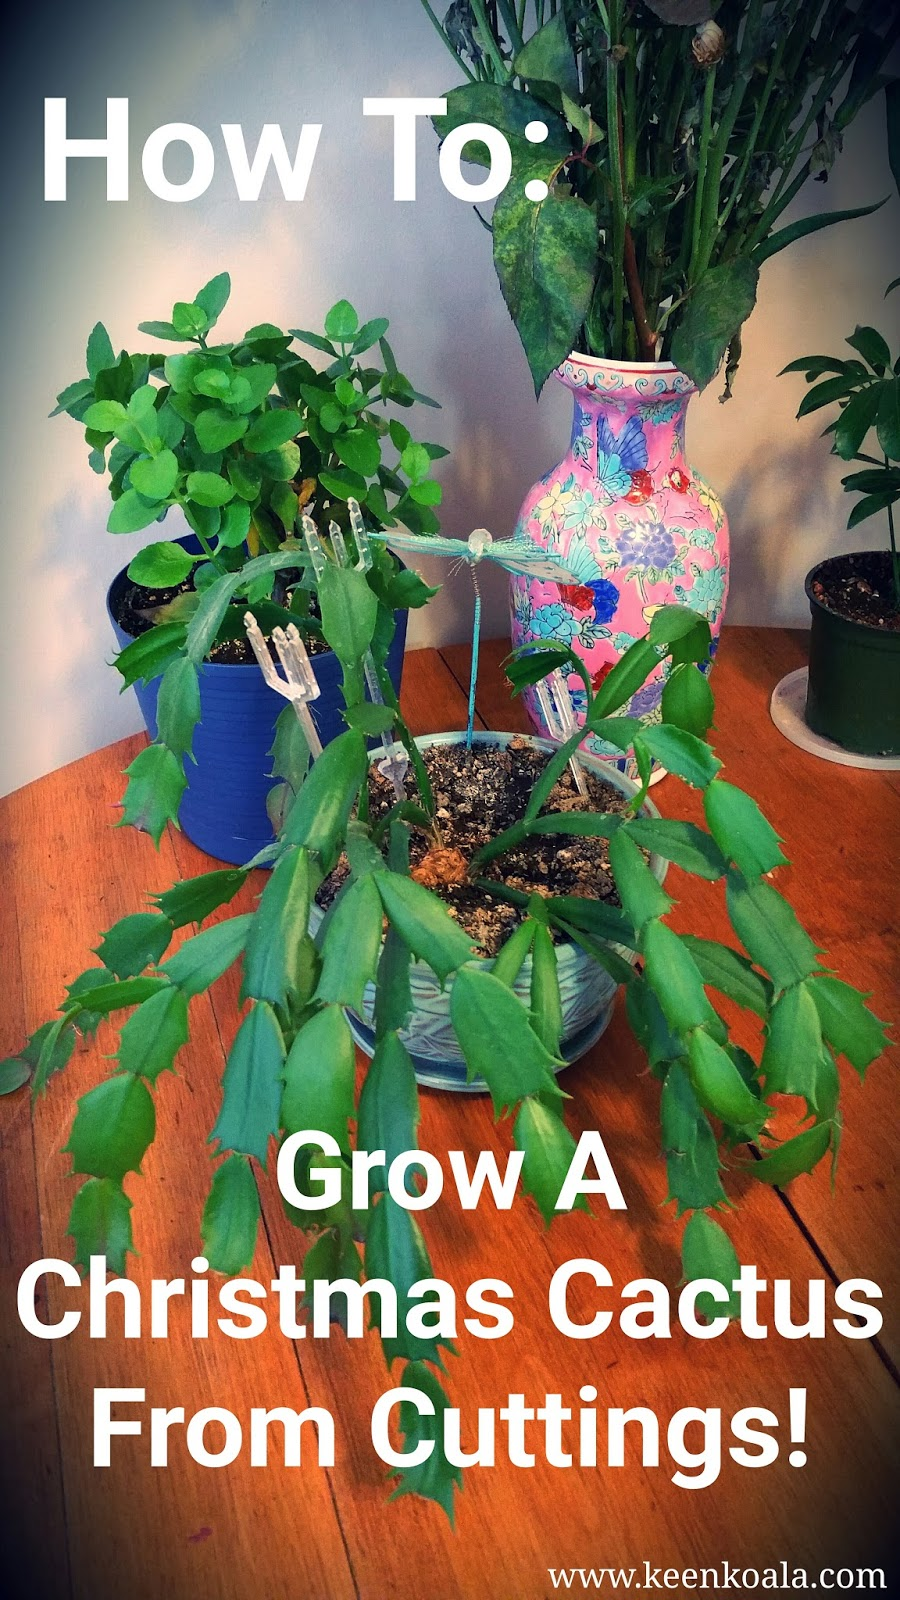 keen koala how to grow a christmas cactus from cuttings. Black Bedroom Furniture Sets. Home Design Ideas